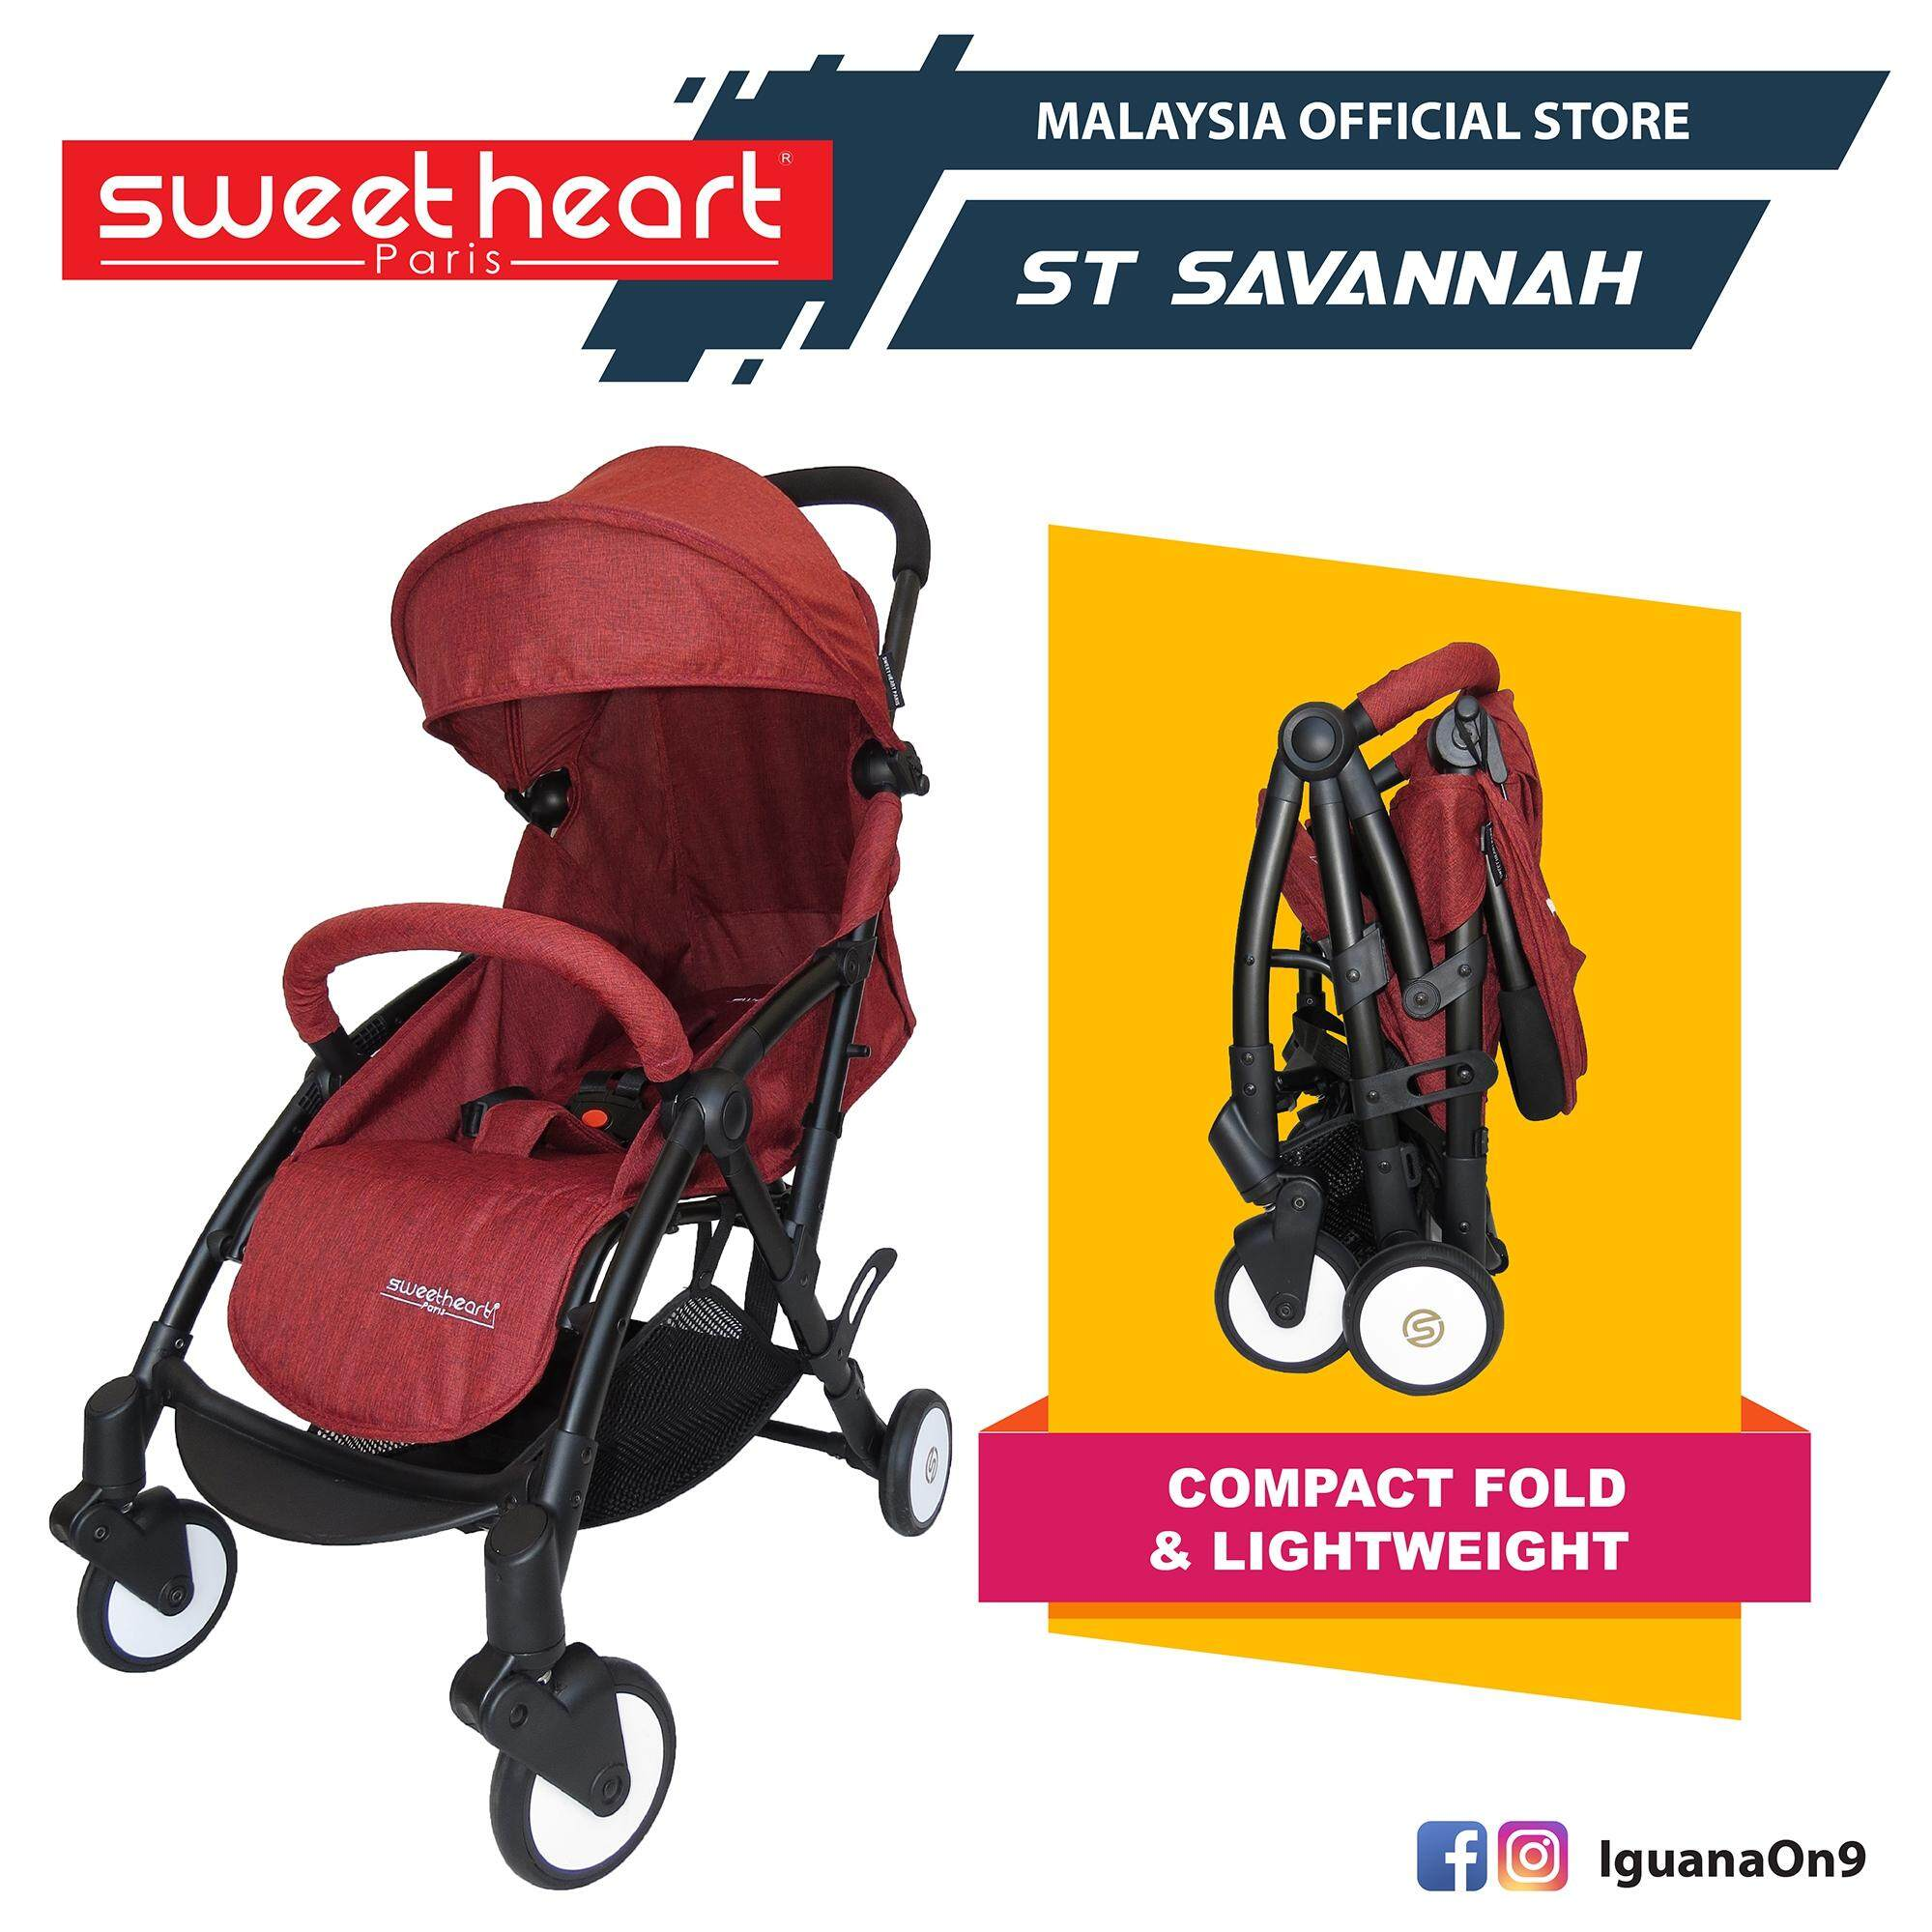 Sweet Heart Paris Products For The Best Price In Malaysia